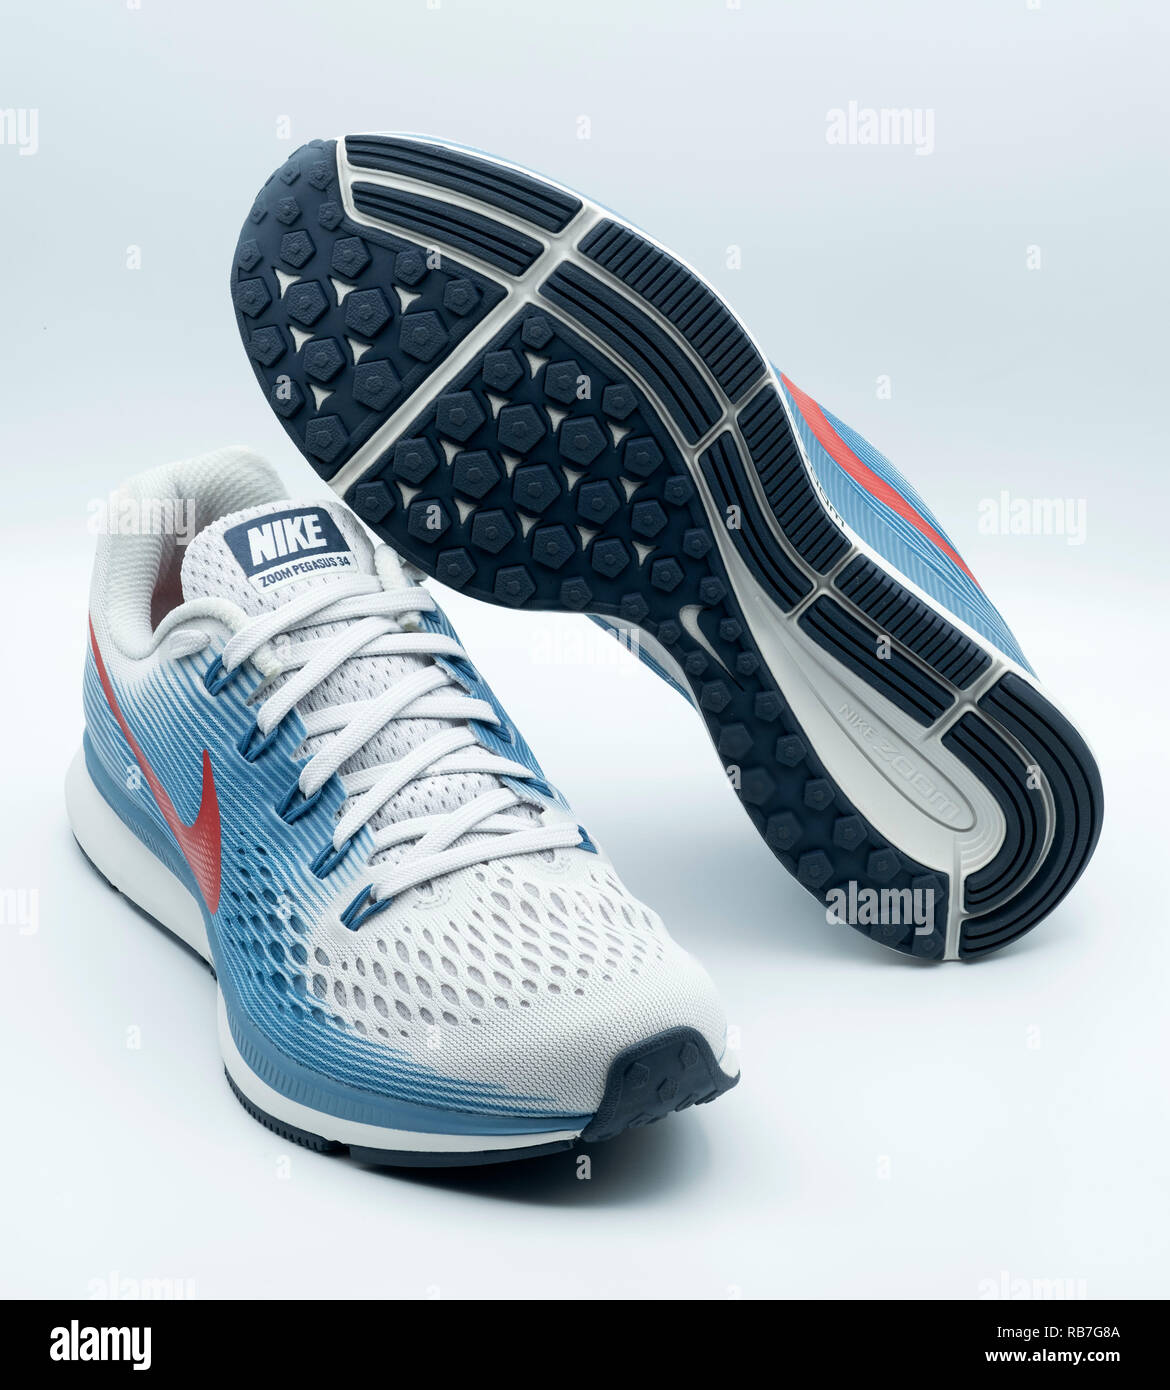 check out 174a1 850cd Nike Sneakers Stock Photos & Nike Sneakers Stock Images - Alamy